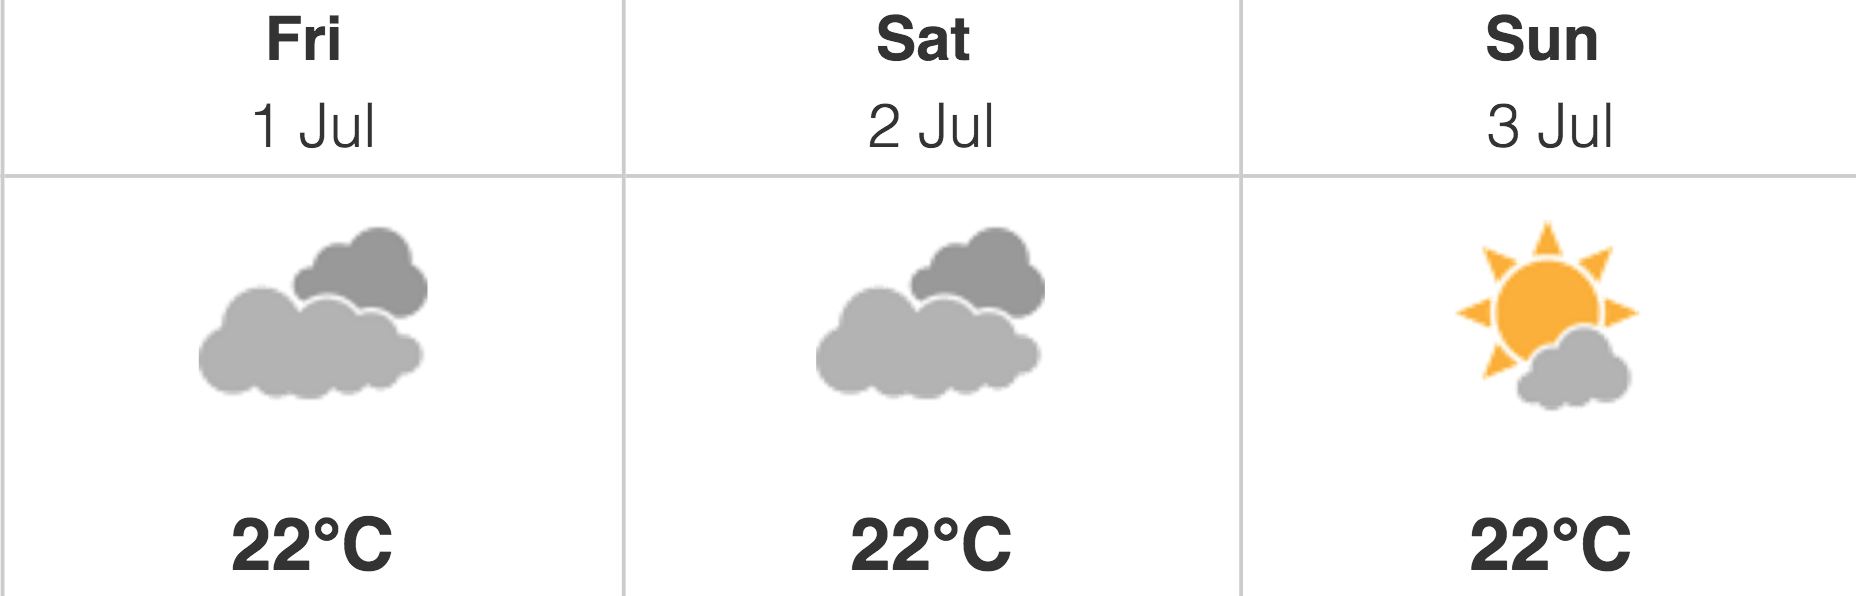 Weather forecast for Vancouver (Environment Canada)